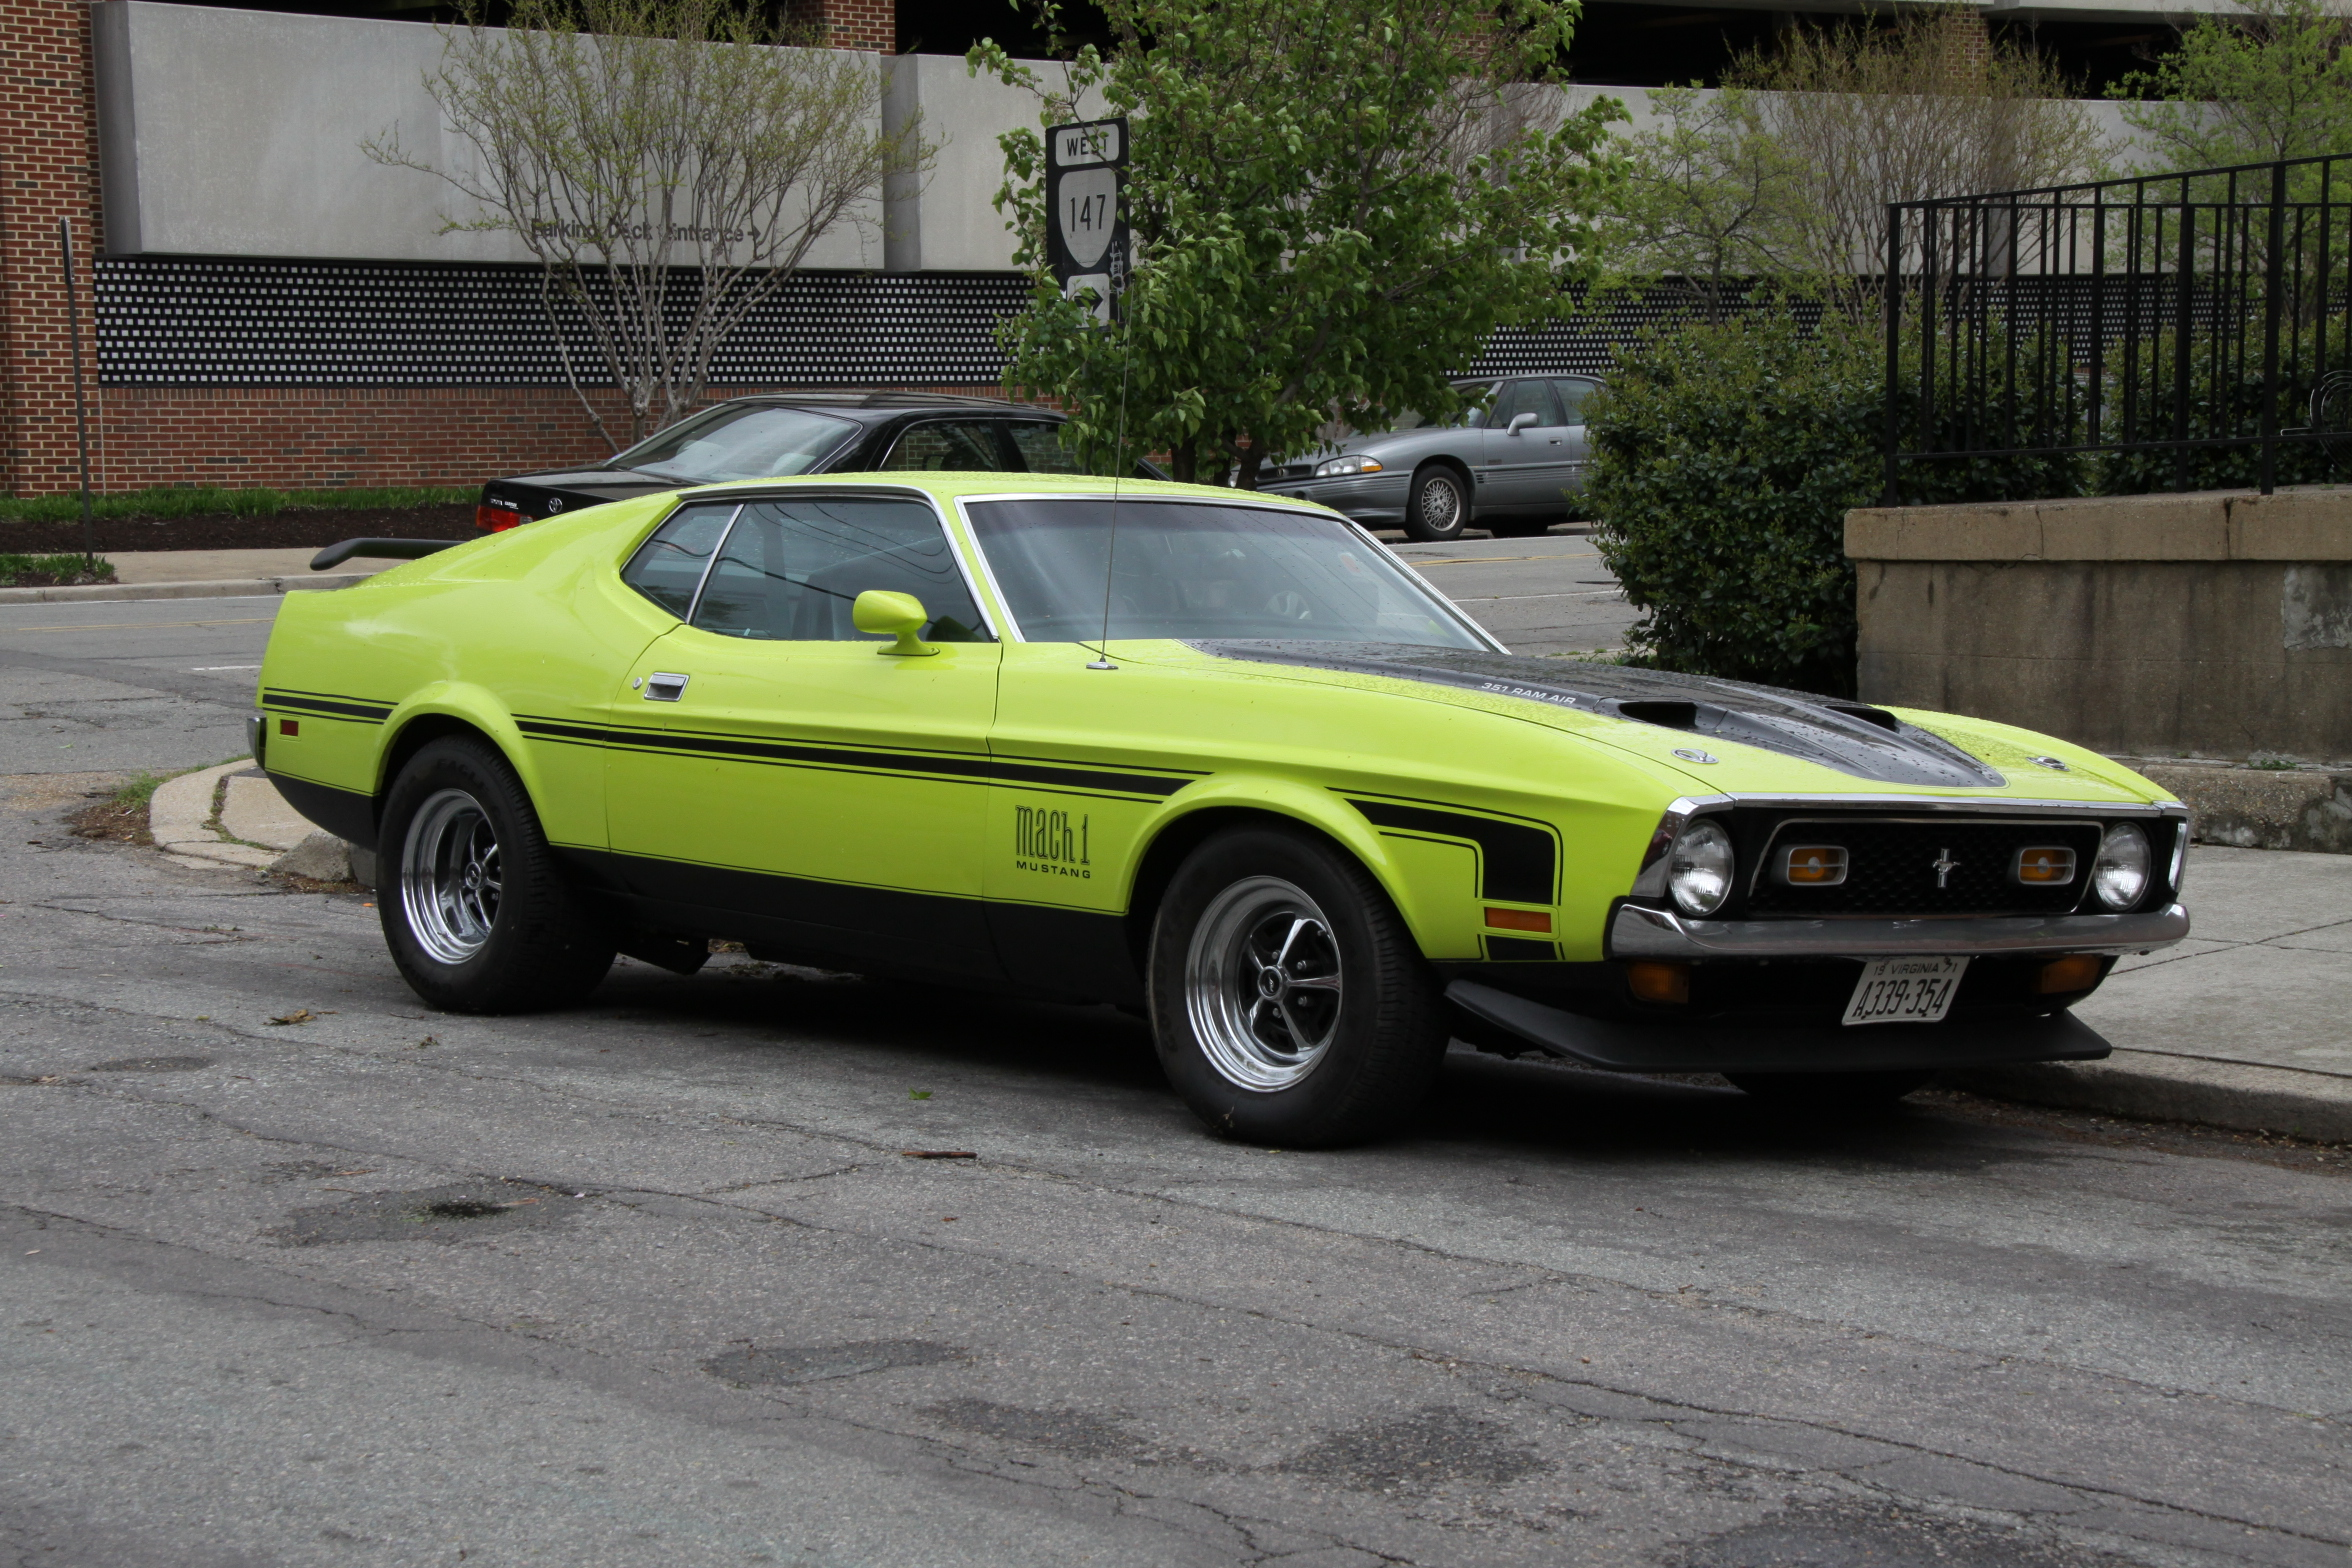 Cl Mustang >> My perfect Mustang Mach 1. 3DTuning - probably the best car configurator!